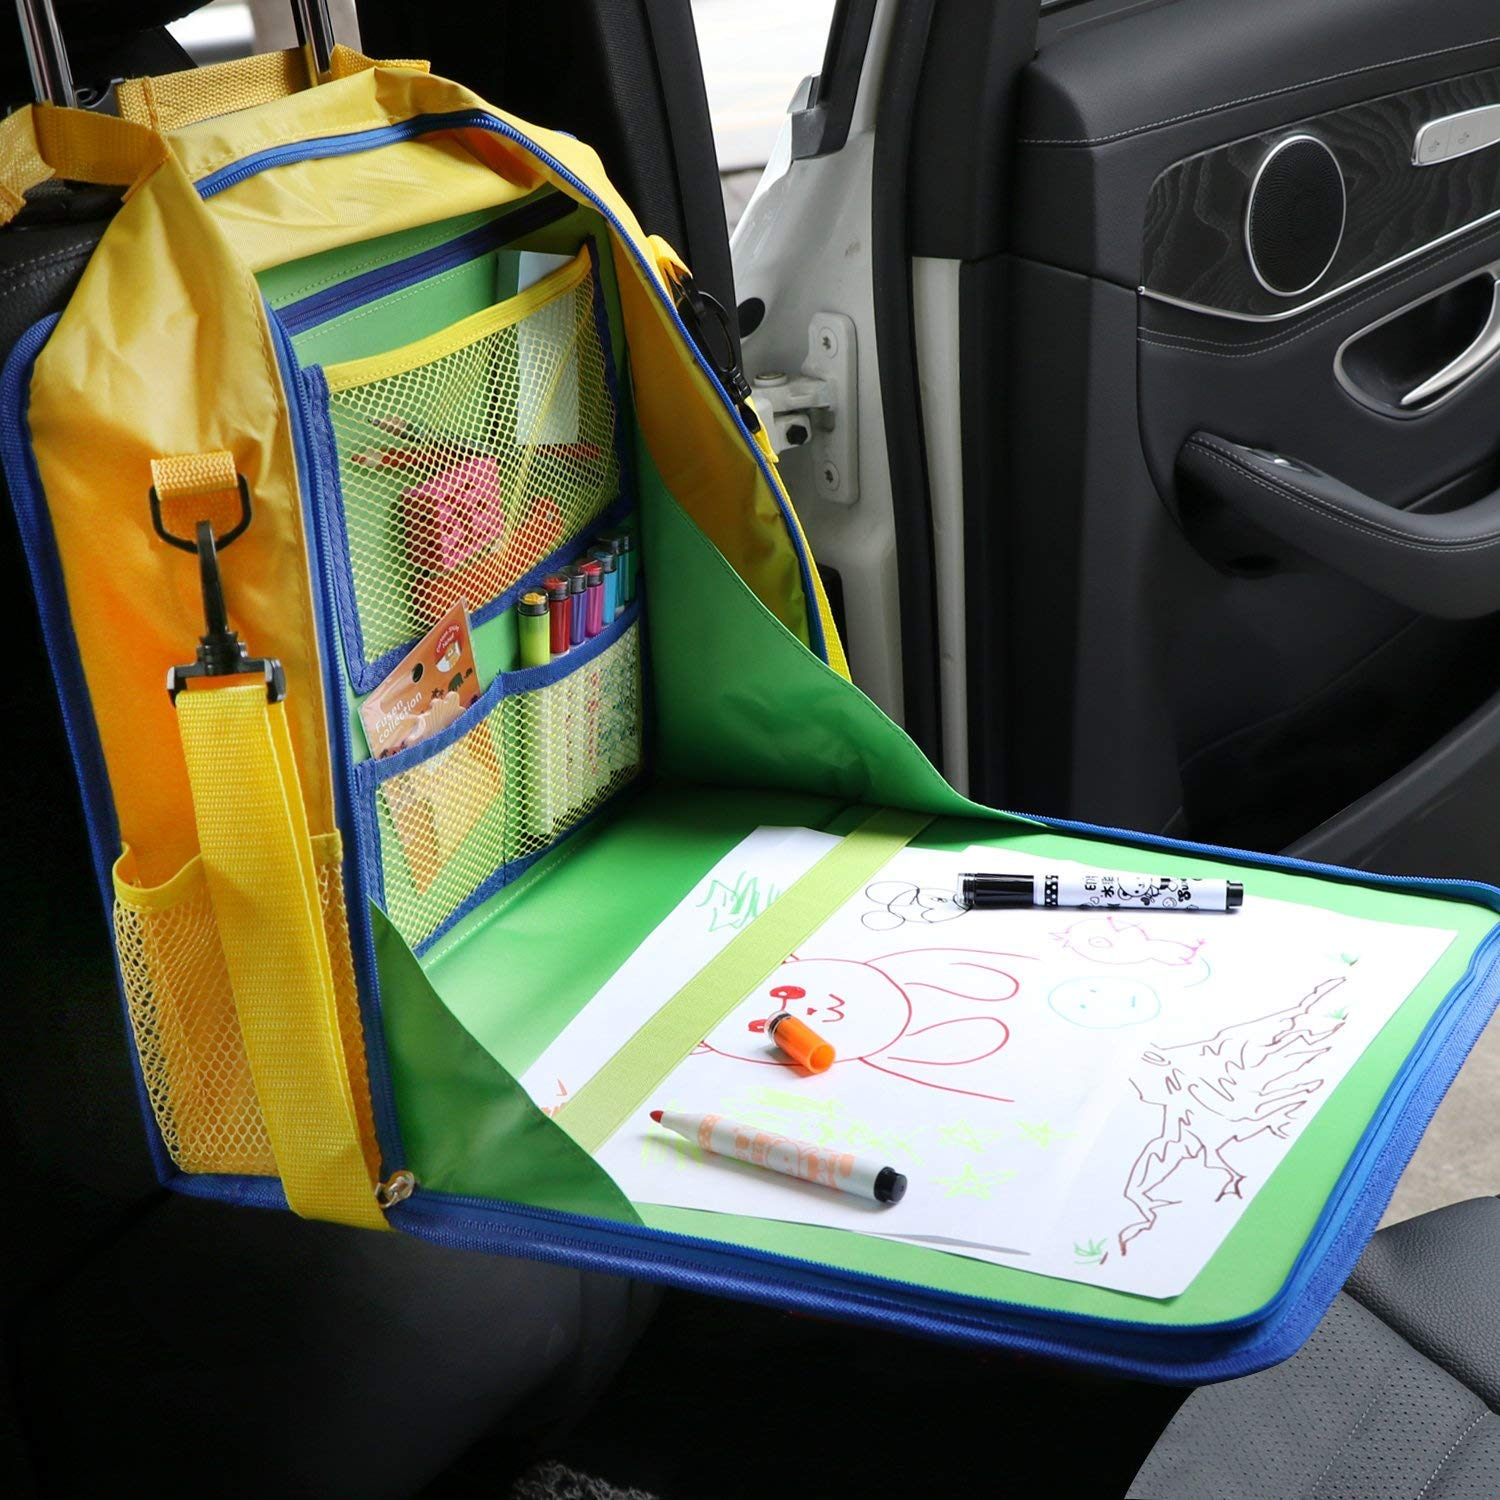 KIPTOP Kids Travel Tray Children Snack and Play Tray for Car Bus Train and Plane Journeys